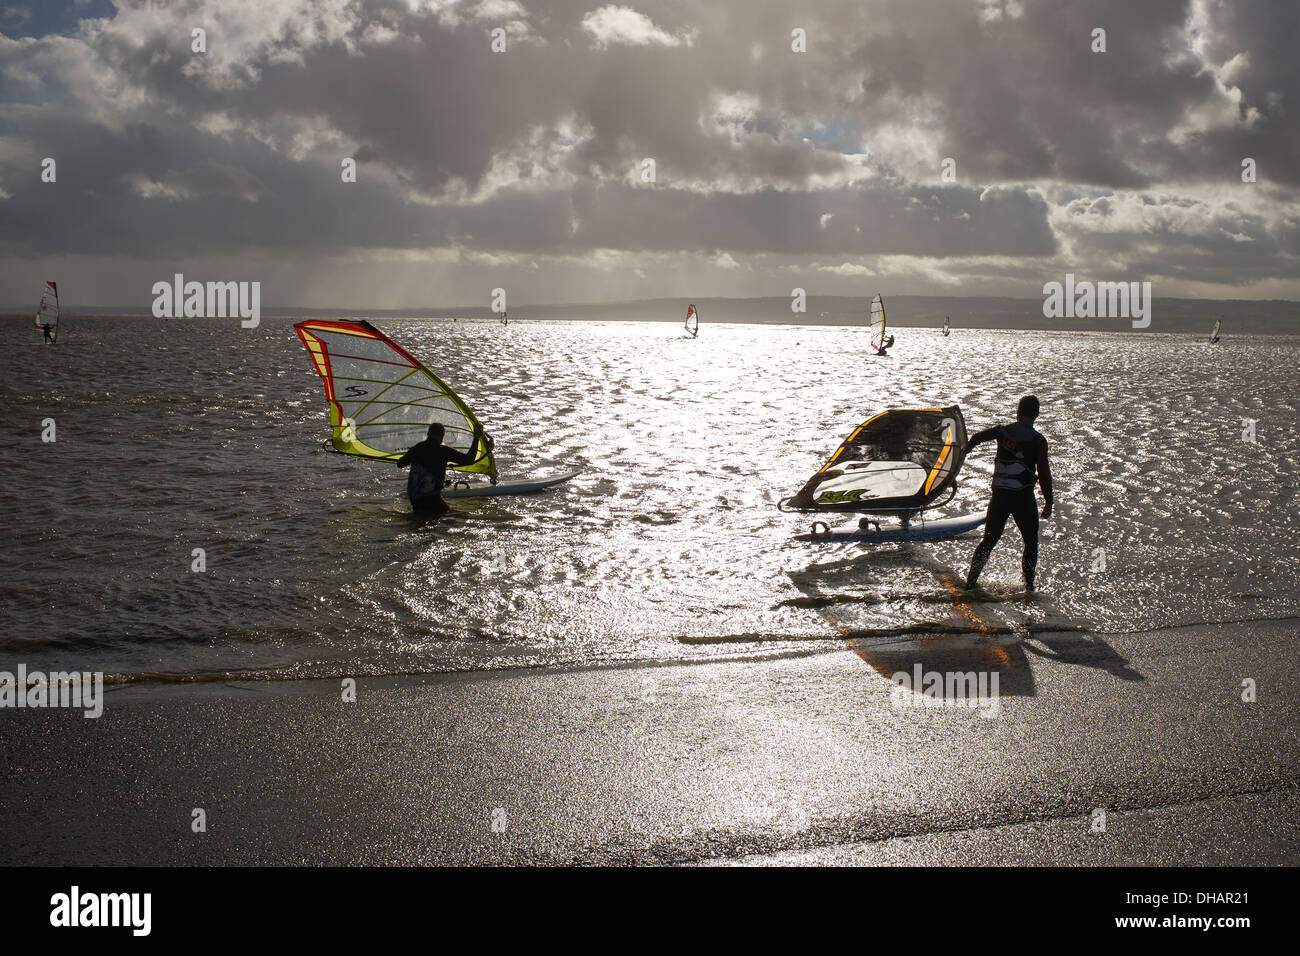 People windsurfing on the Marine Lake at West Kirby on the Wirral on a very cold blustery day - Stock Image